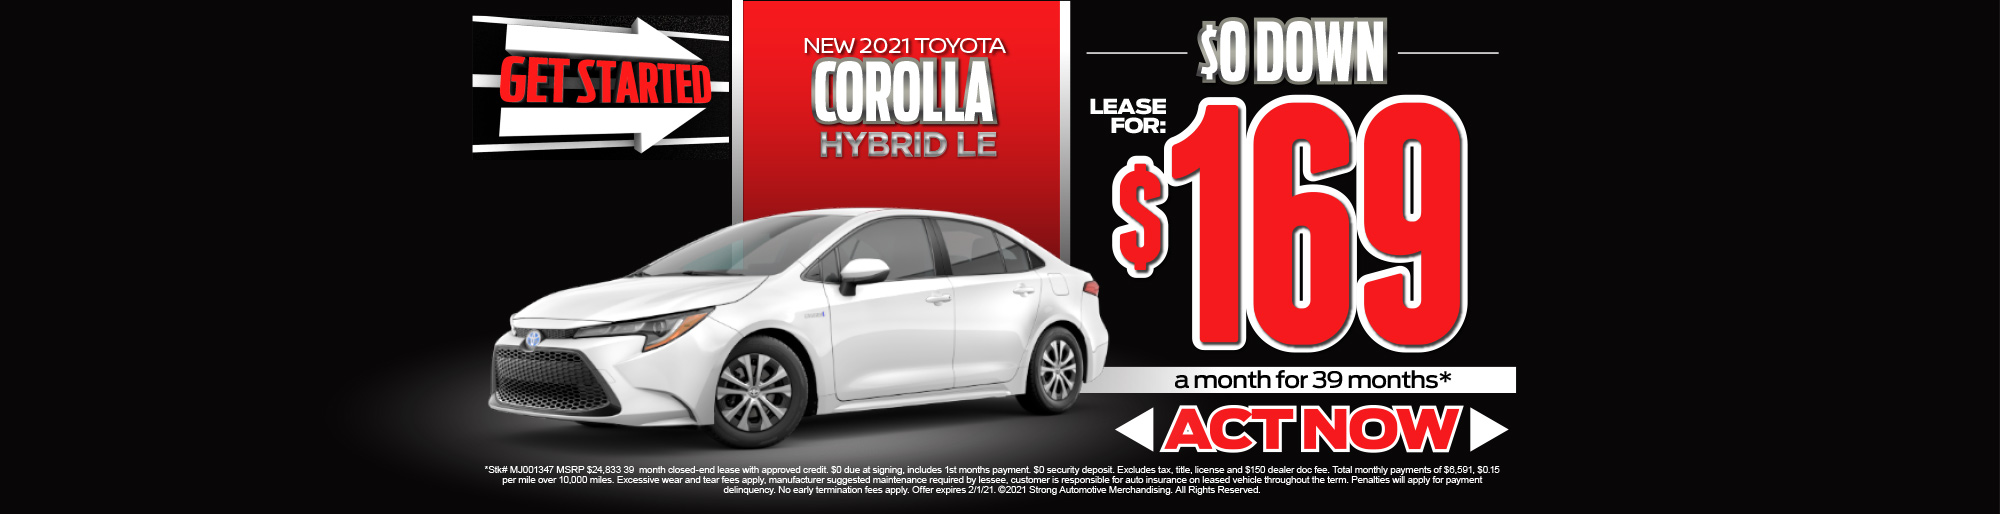 LEASE A NEW 2021 COROLLA HYBRID LE FOR $169/MO* - ACT NOW